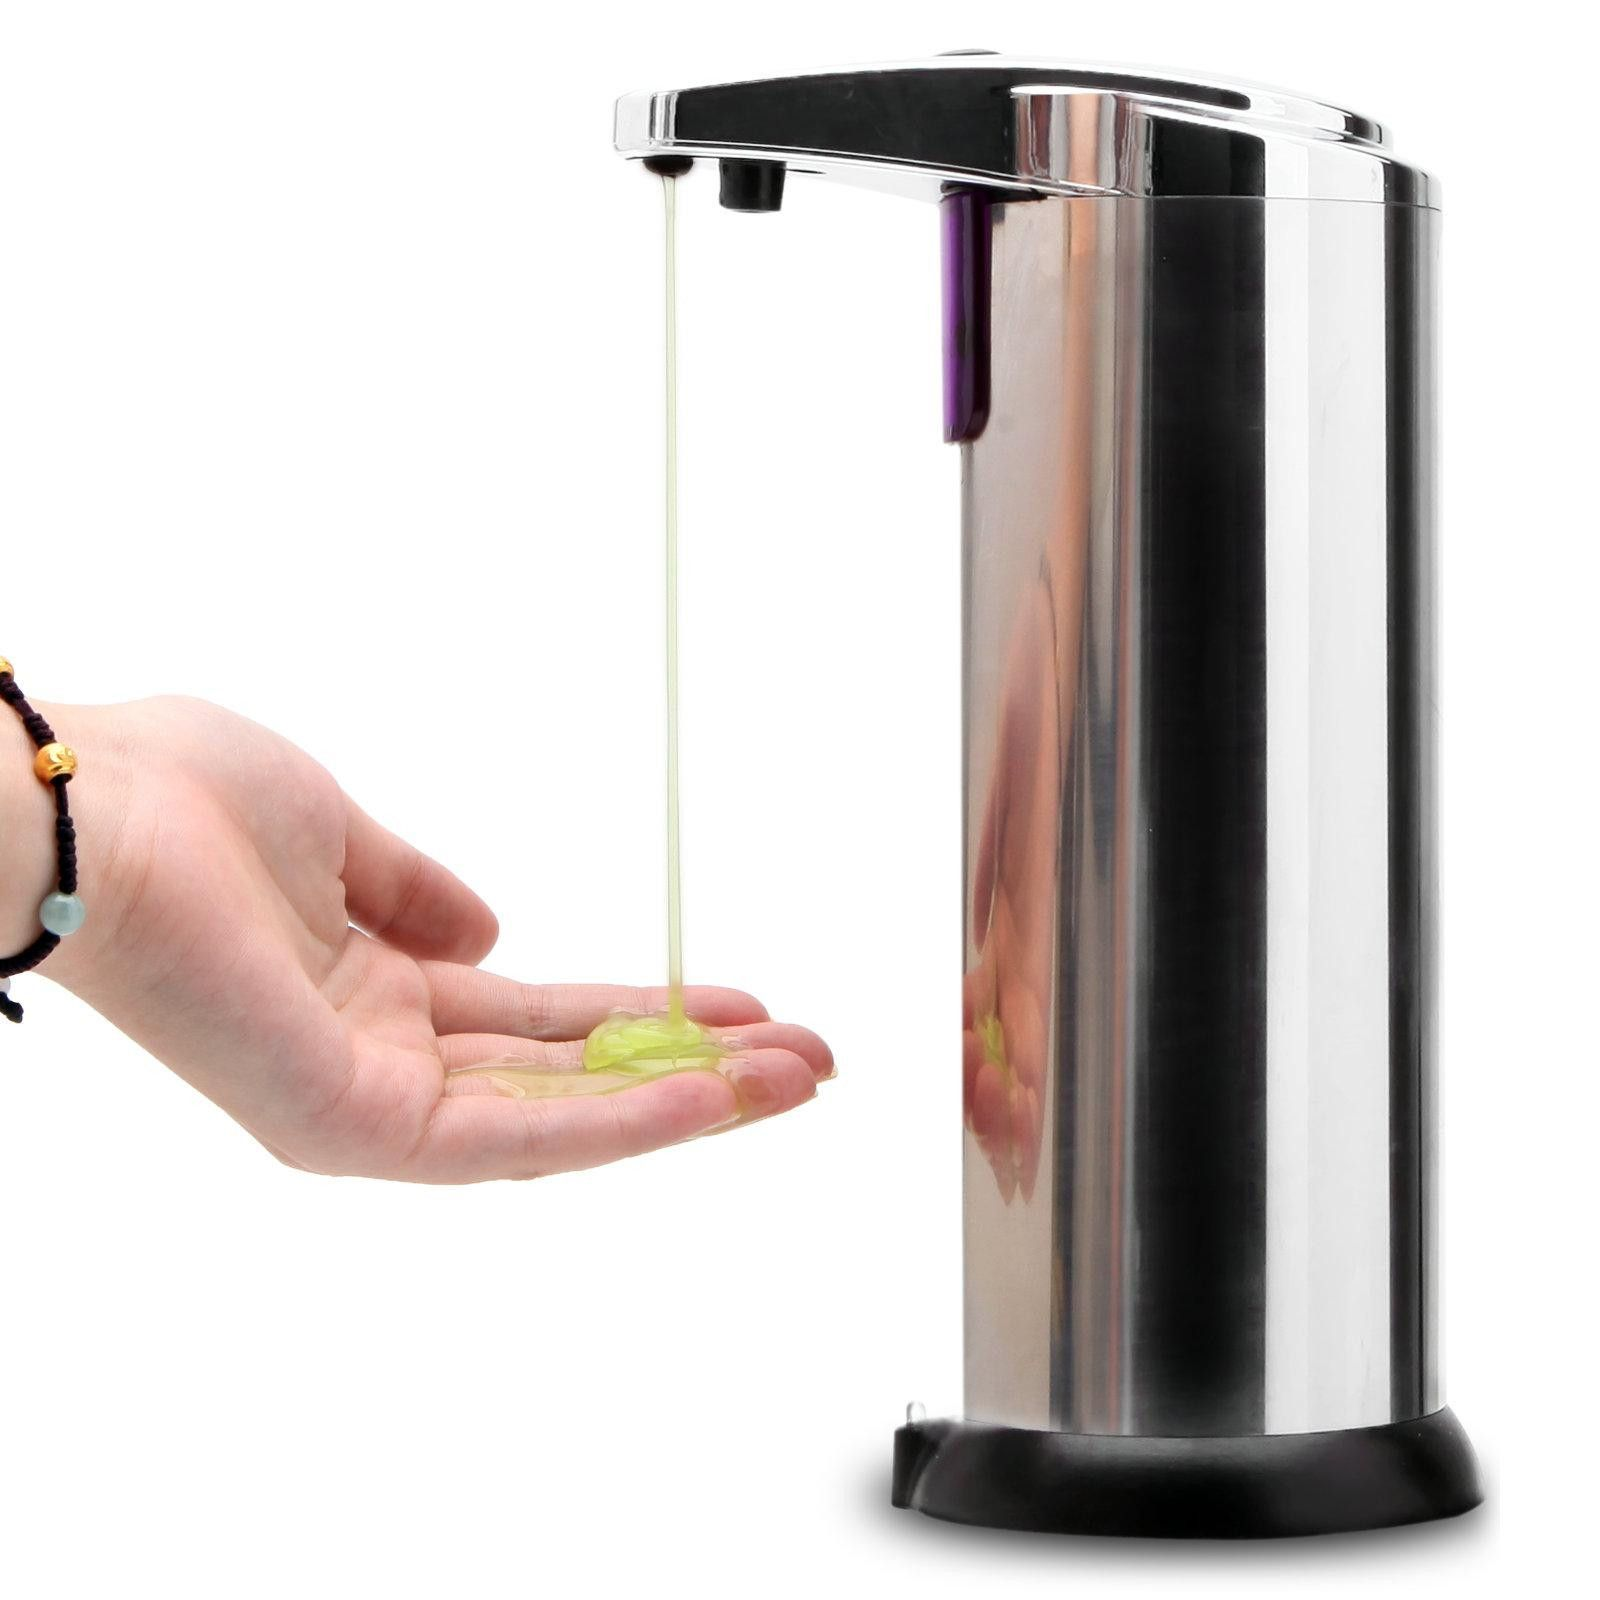 Sensor Soap Dispenser Stainless Steel Automatic Hands Free